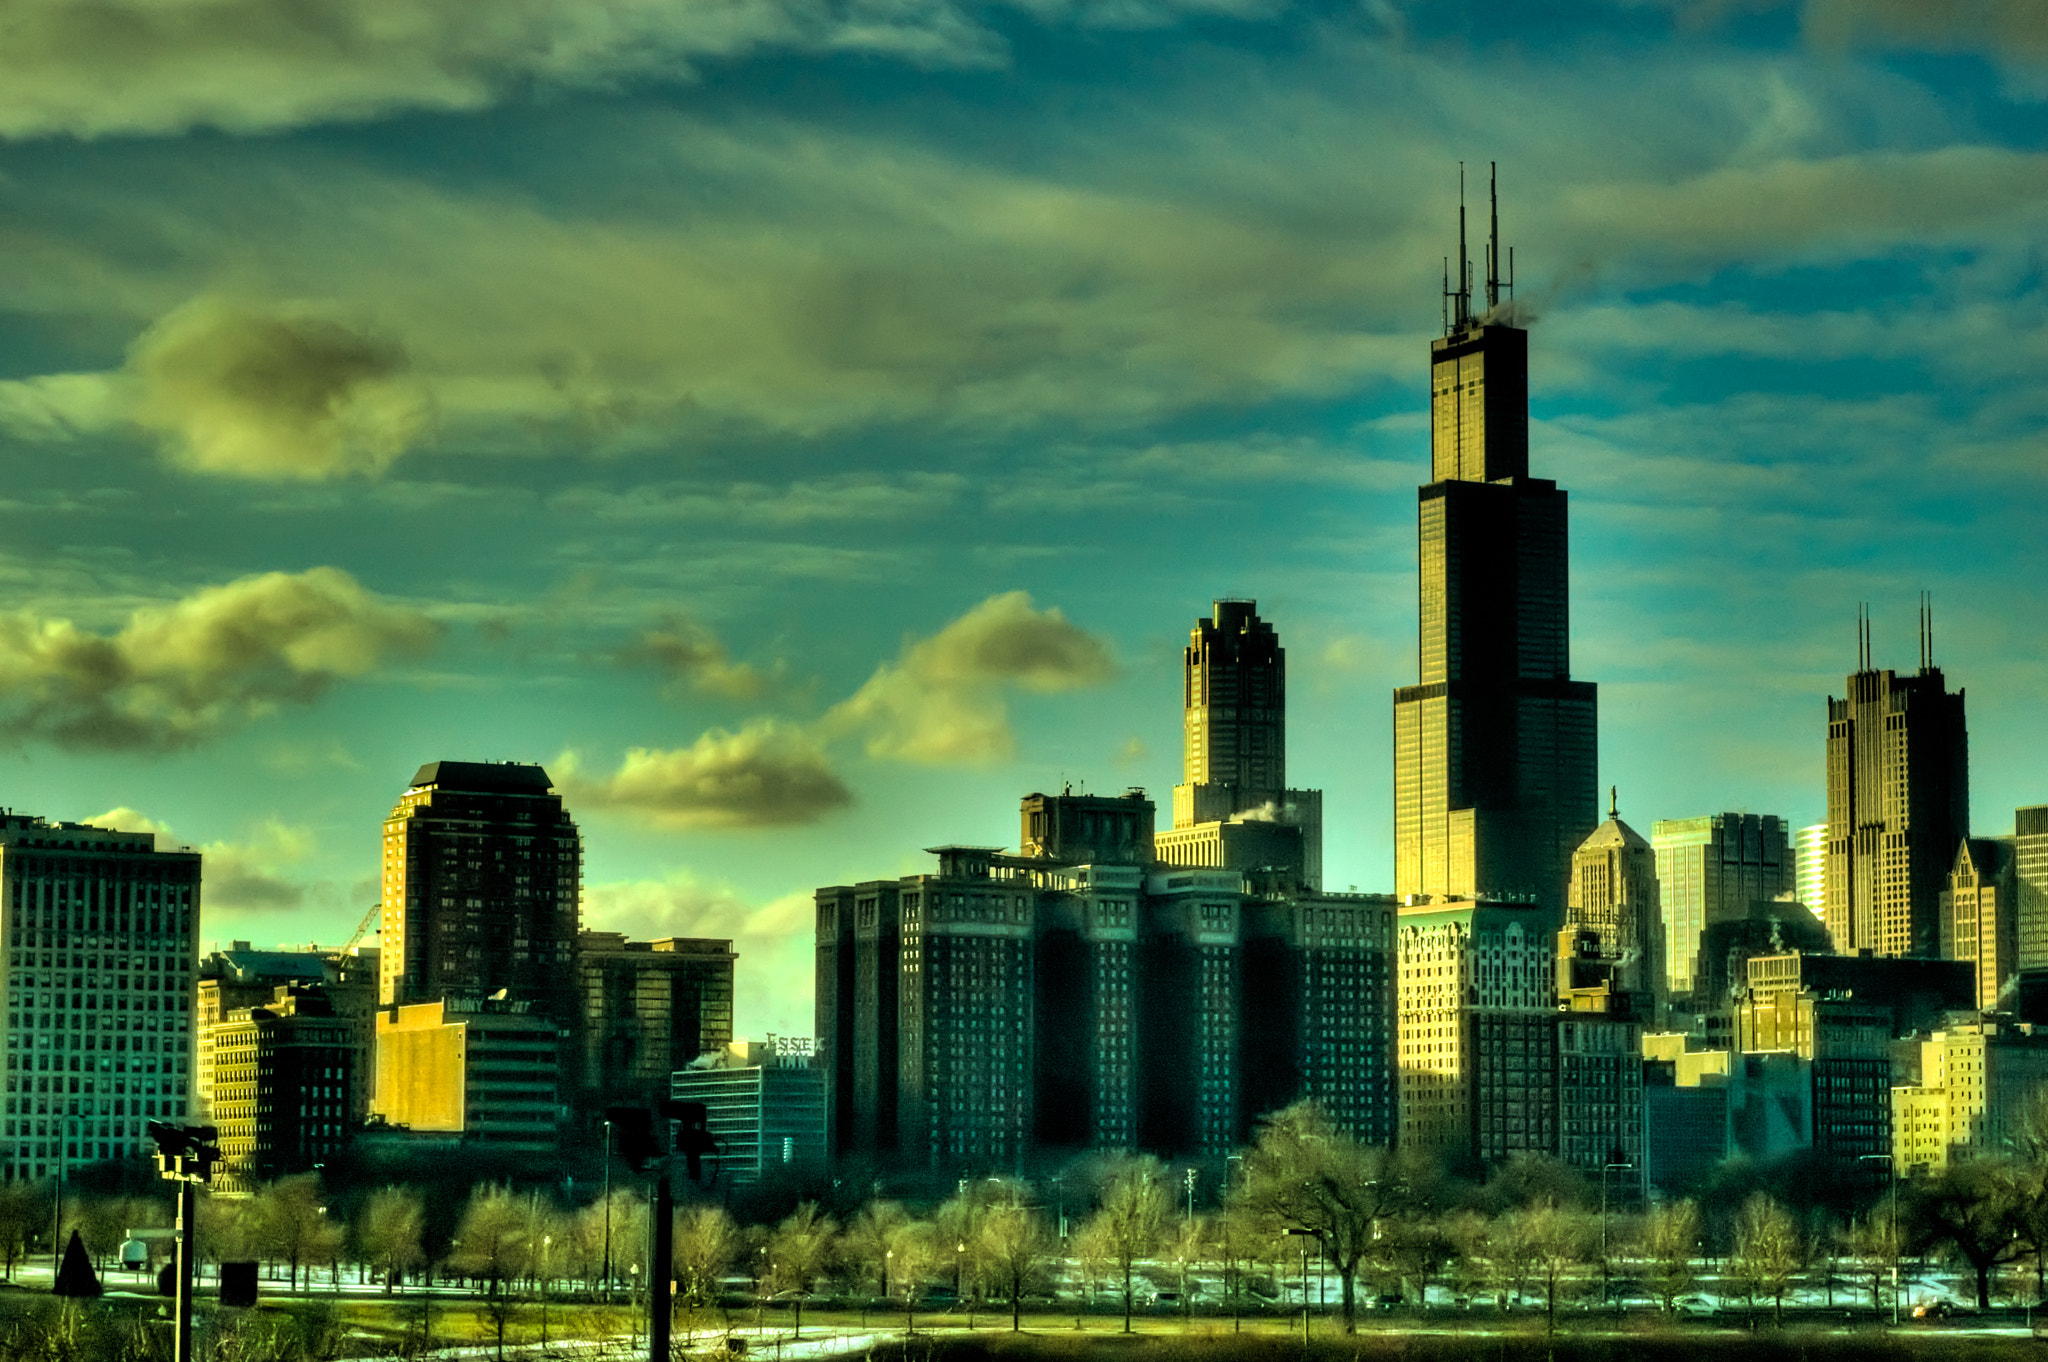 Photograph Chicago Skyline by Brian Burt on 500px